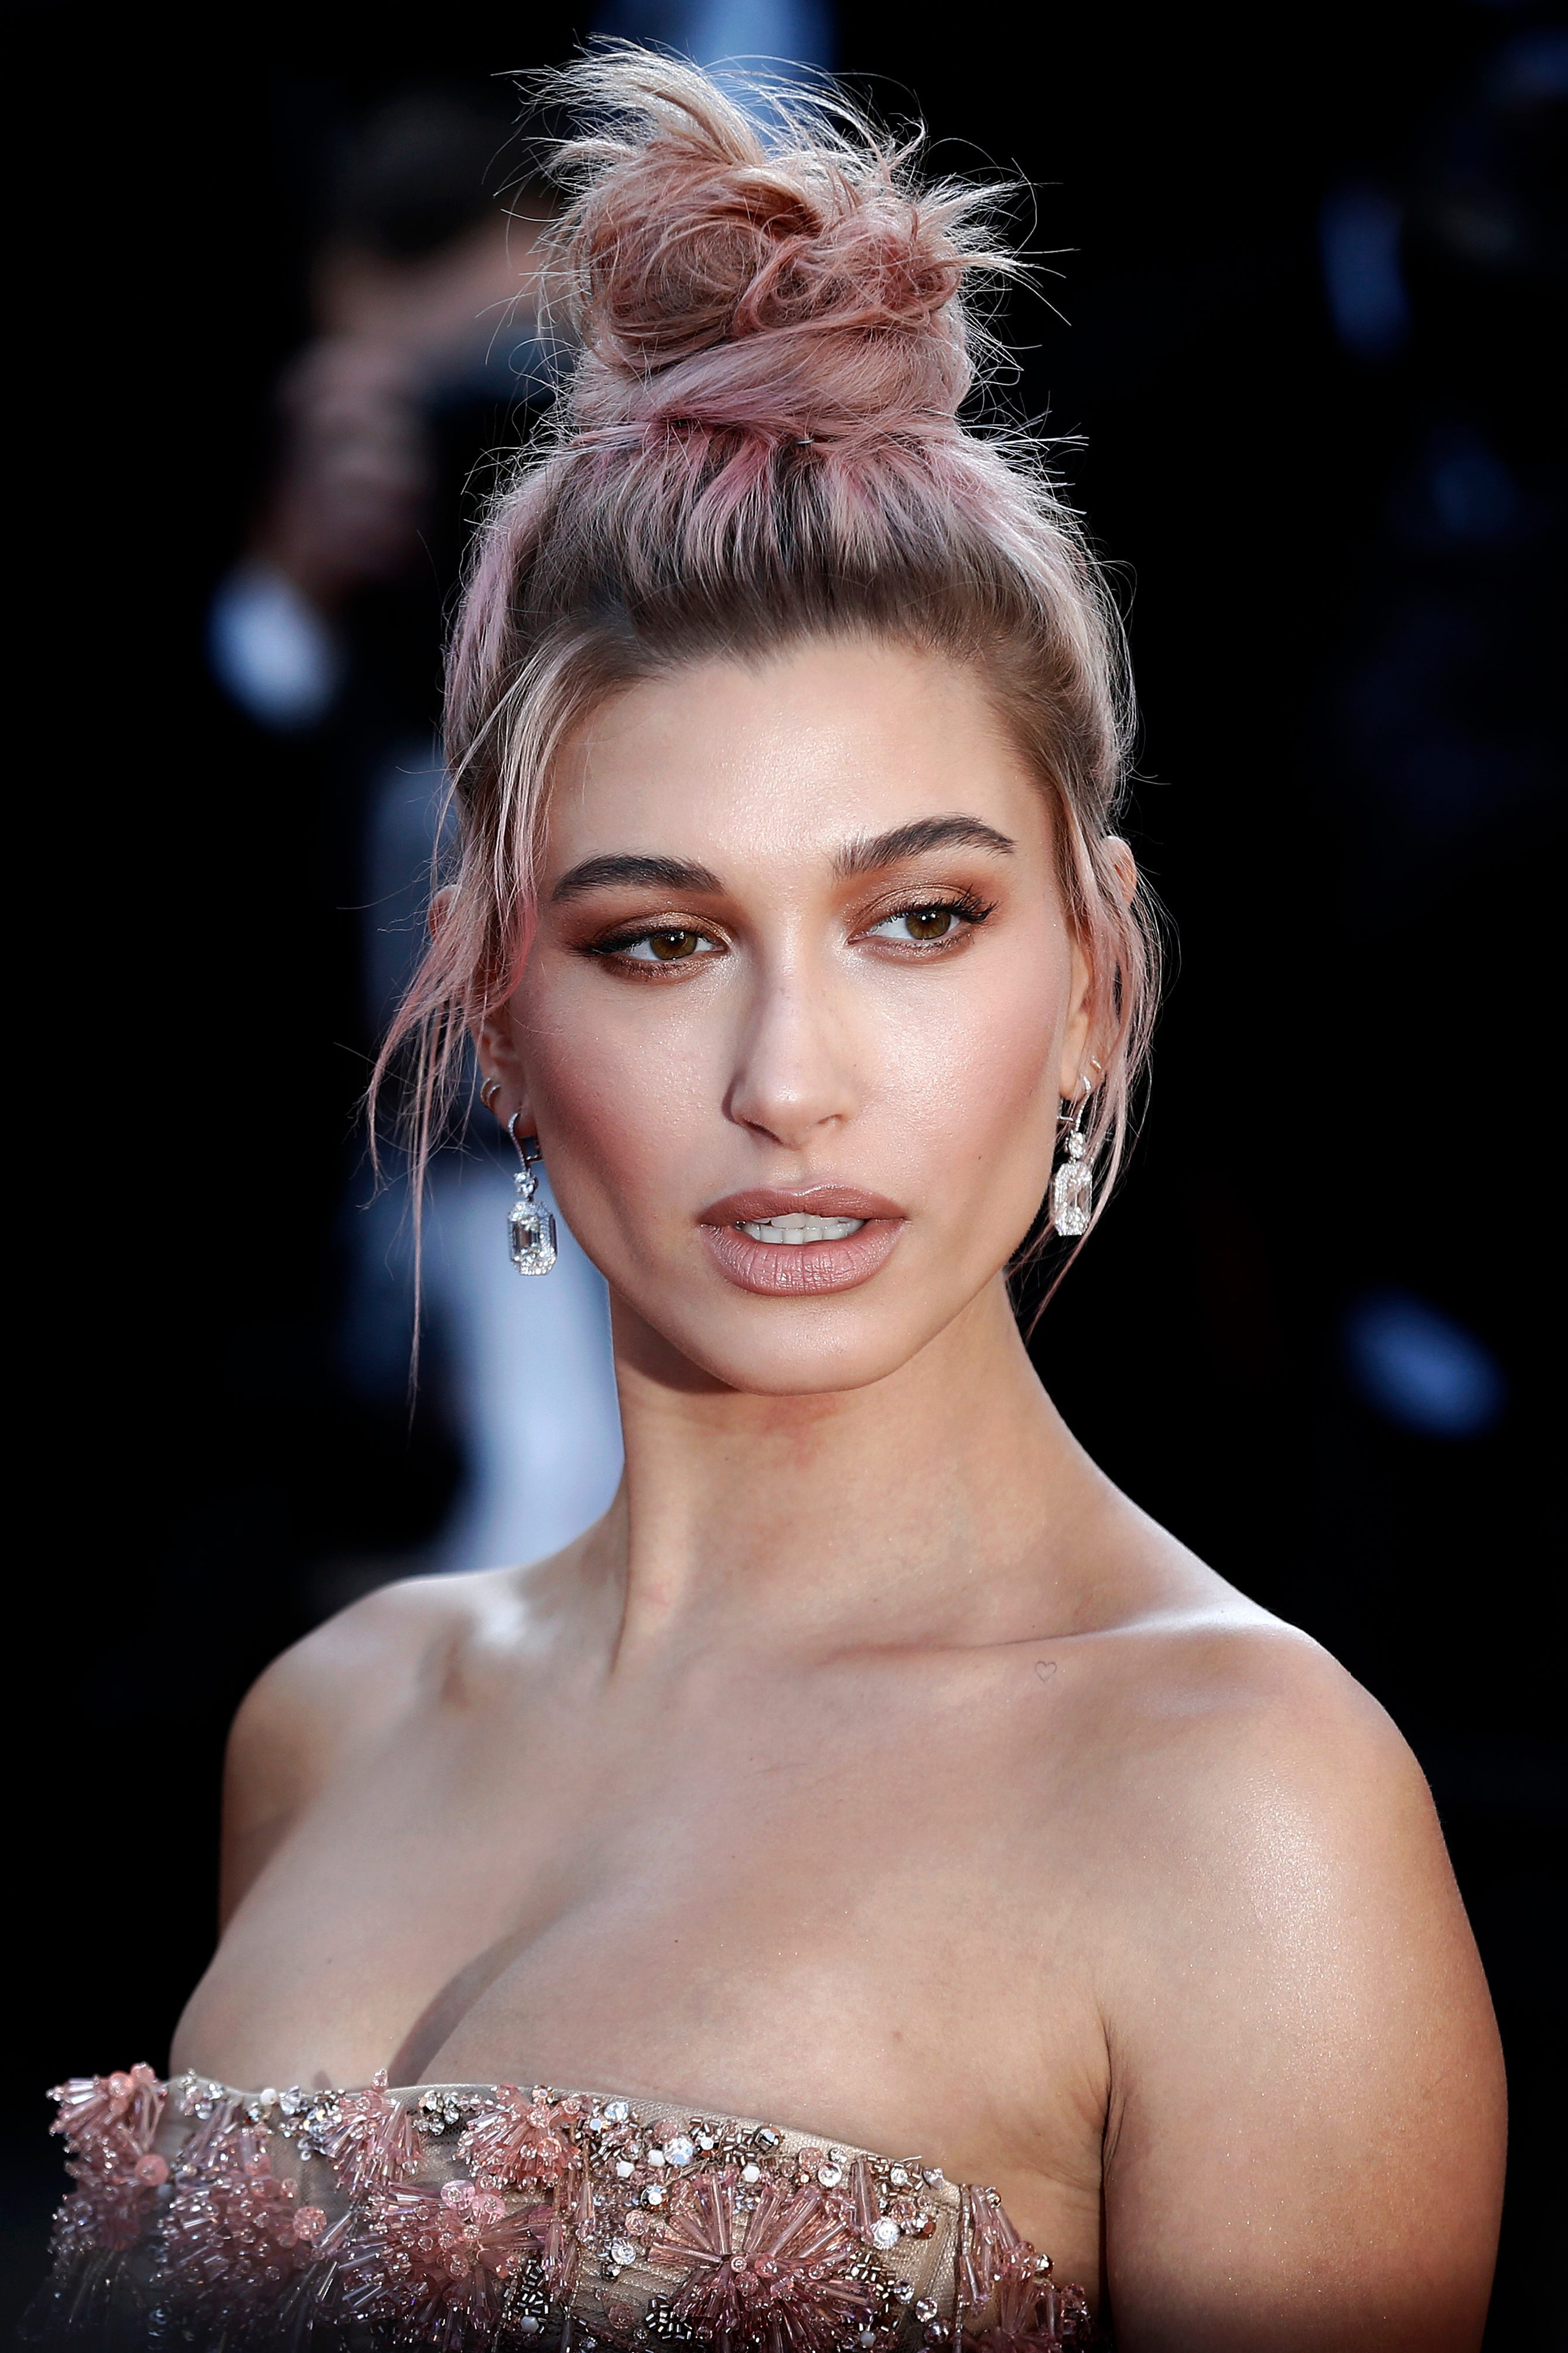 Hailey Baldwin's Pink Highlights with Dark Roots